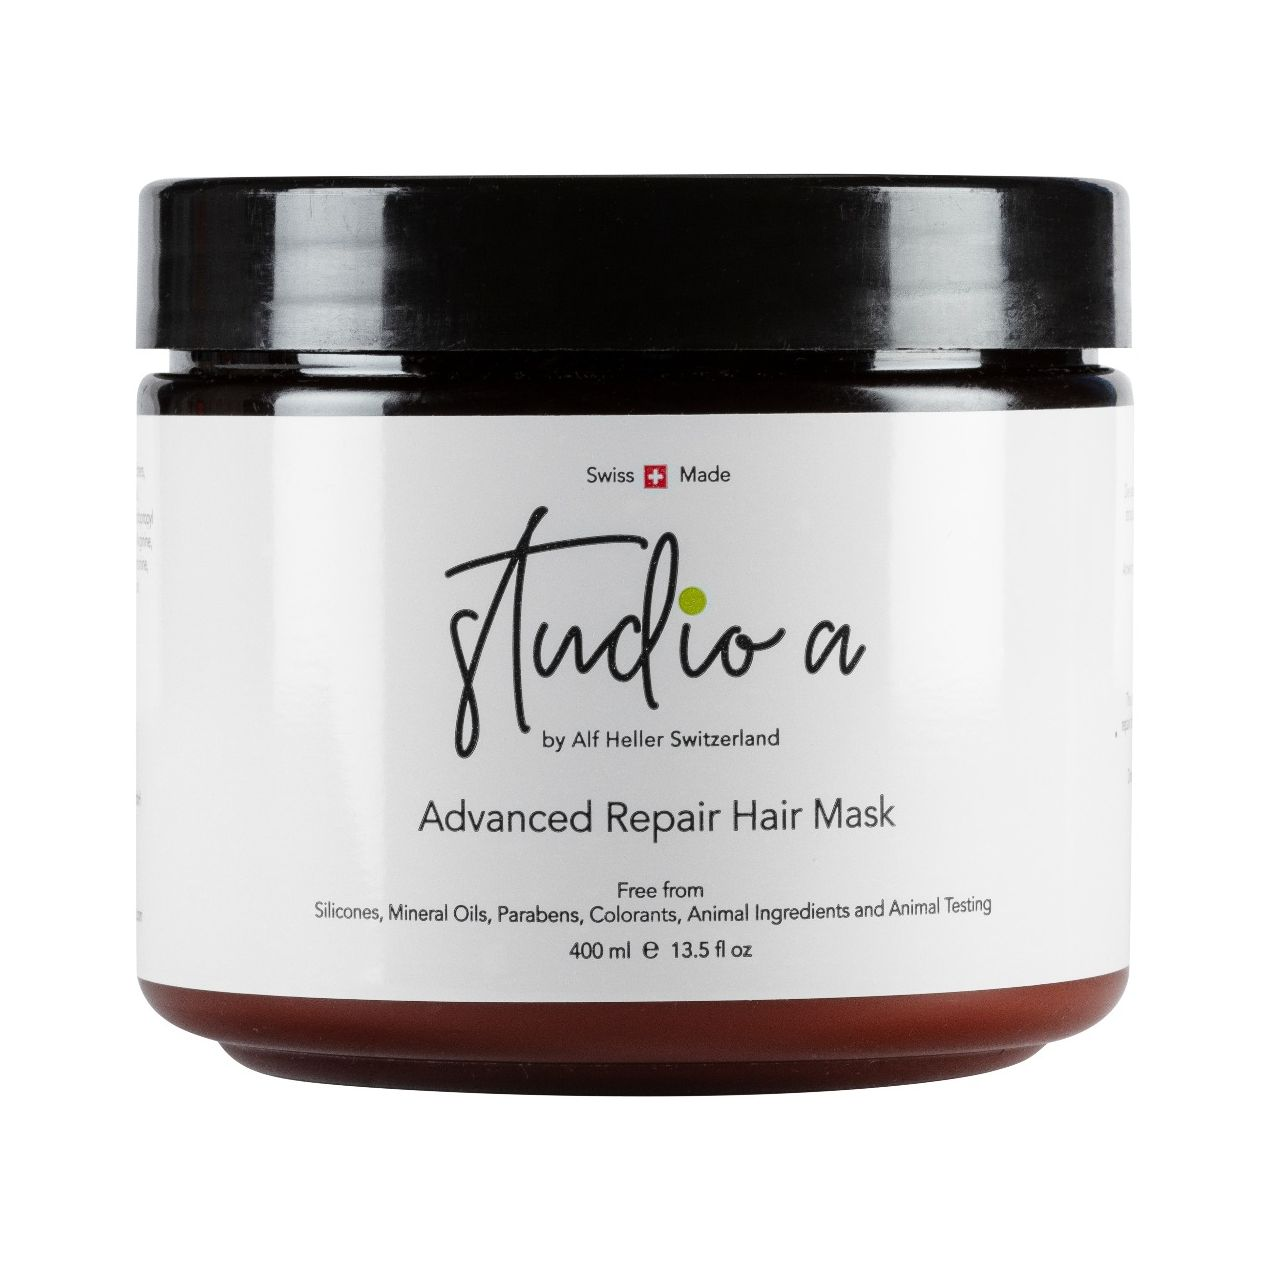 Advanced Repair Hair Mask